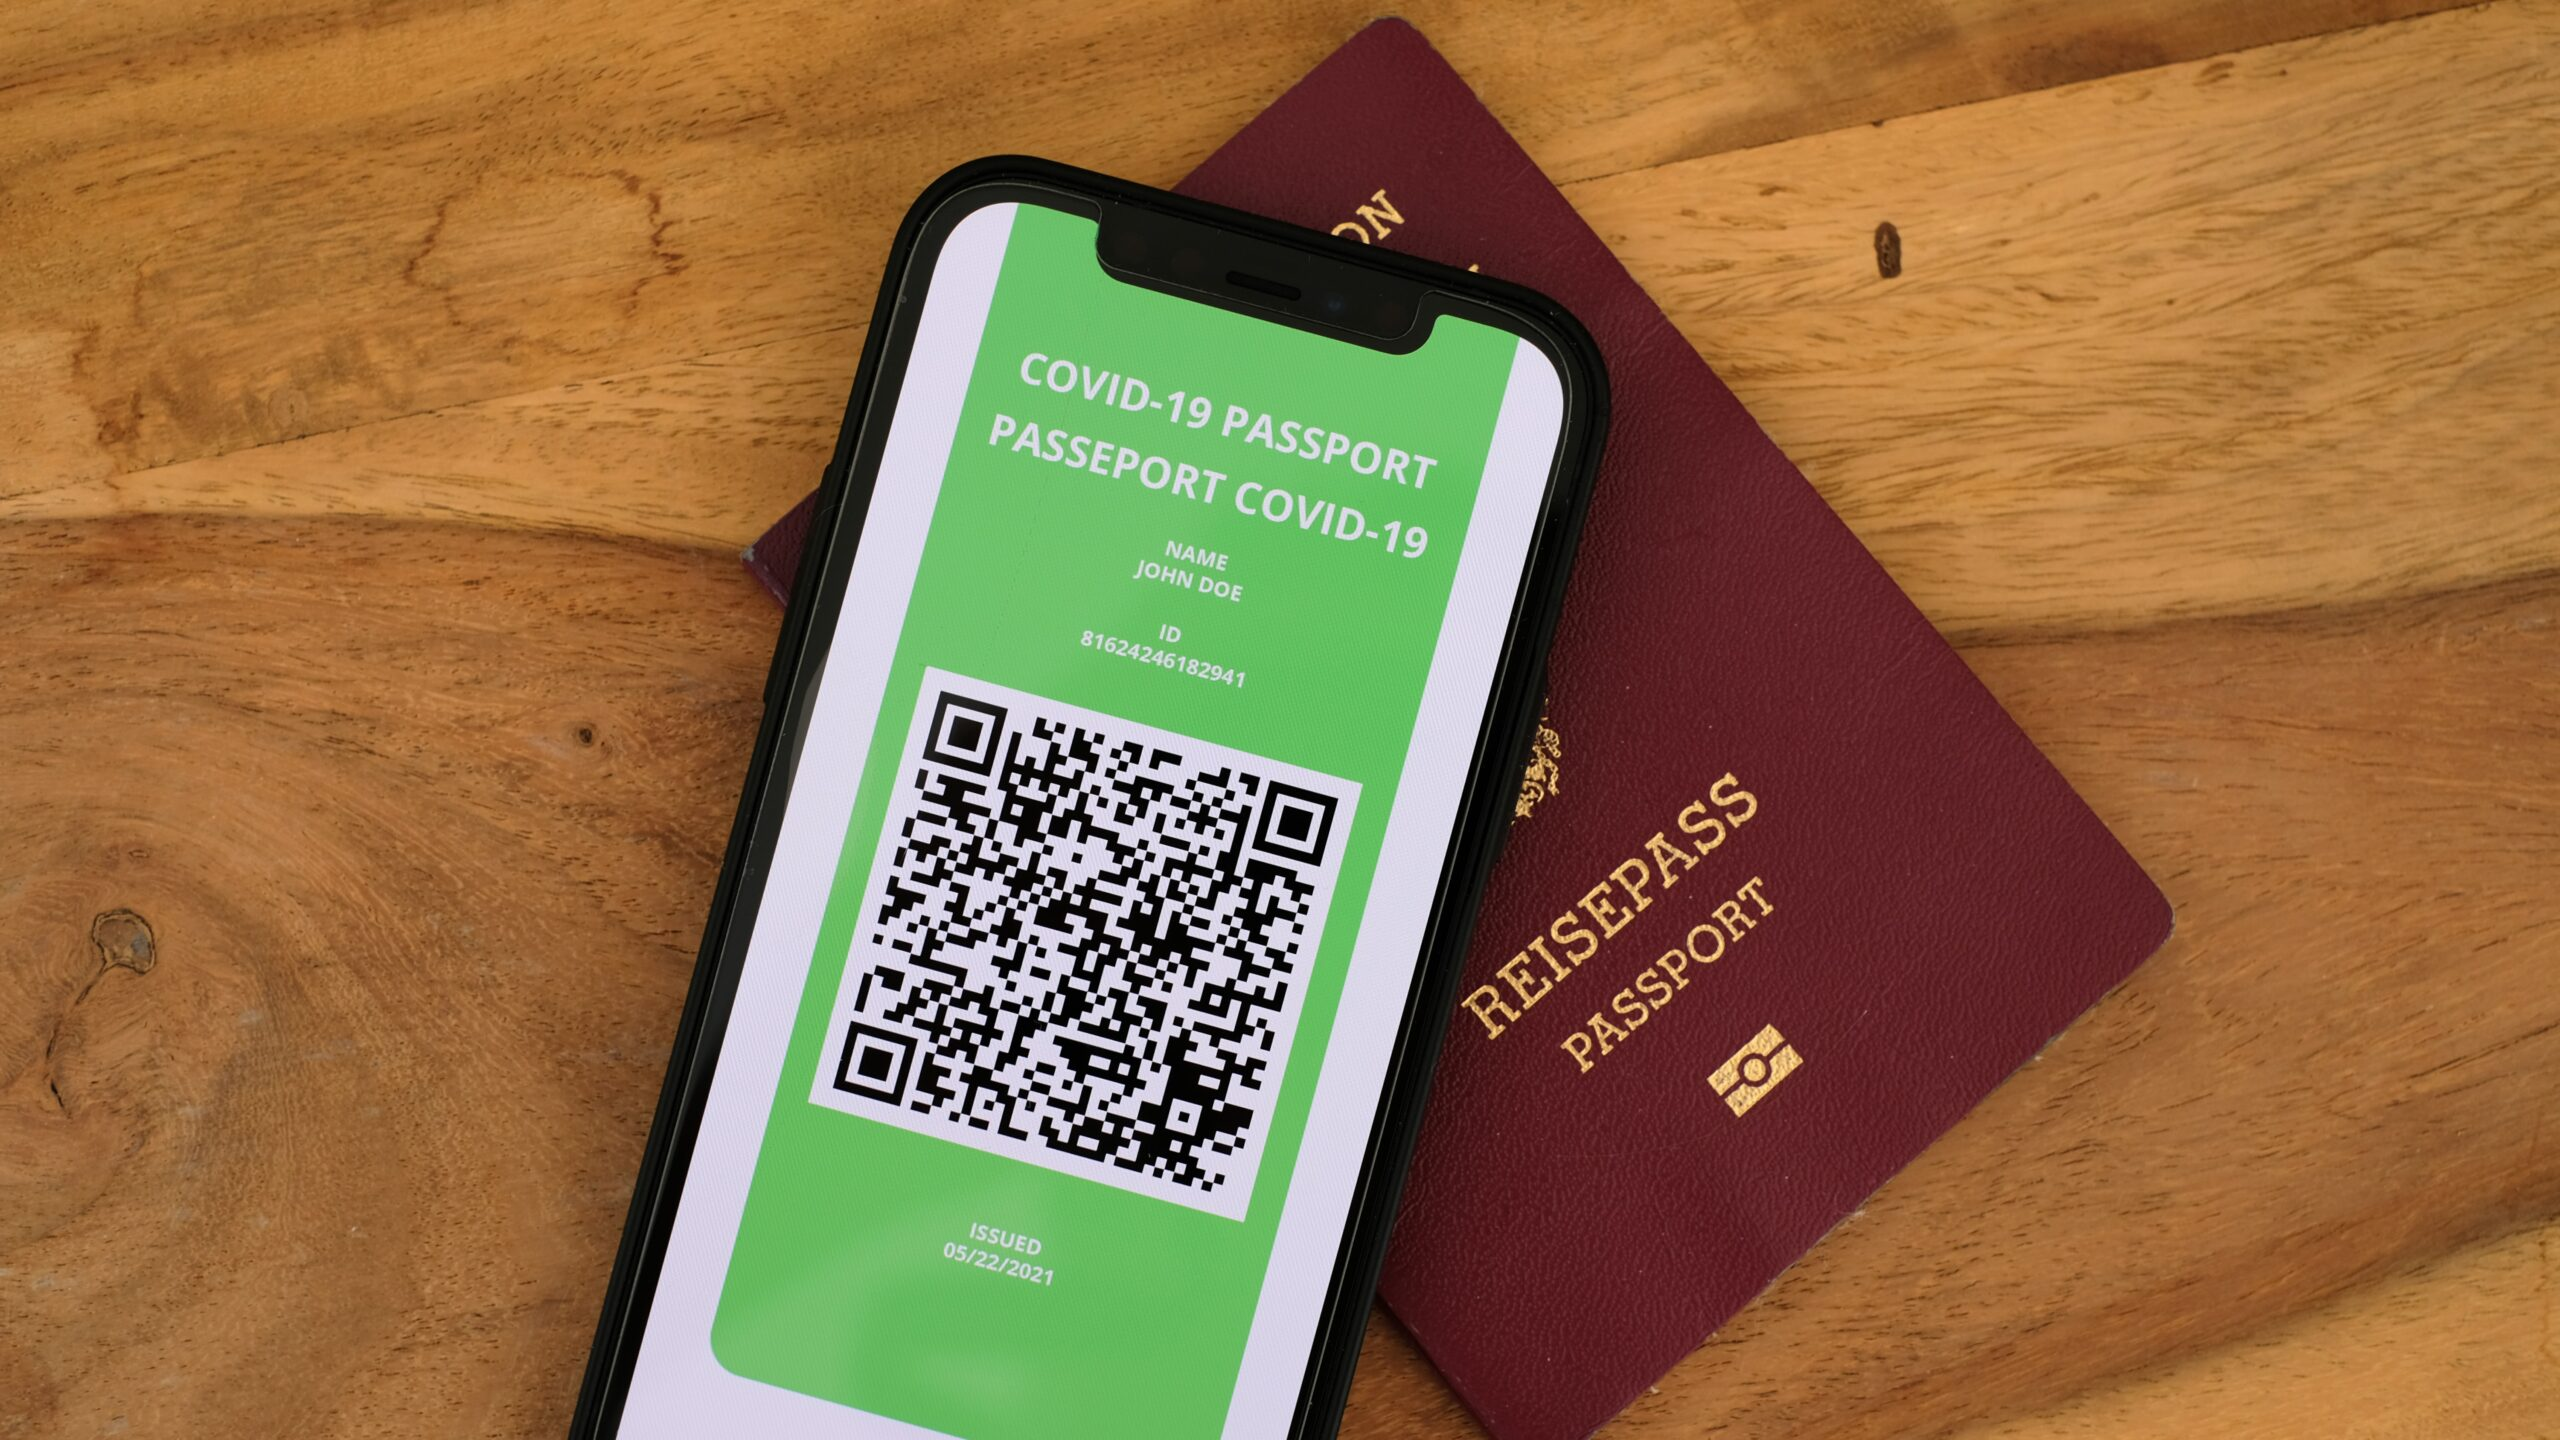 Digitalization and more freedom of movement for European citizens: the EU Commission announced the creation of a Digital COVID Certificate